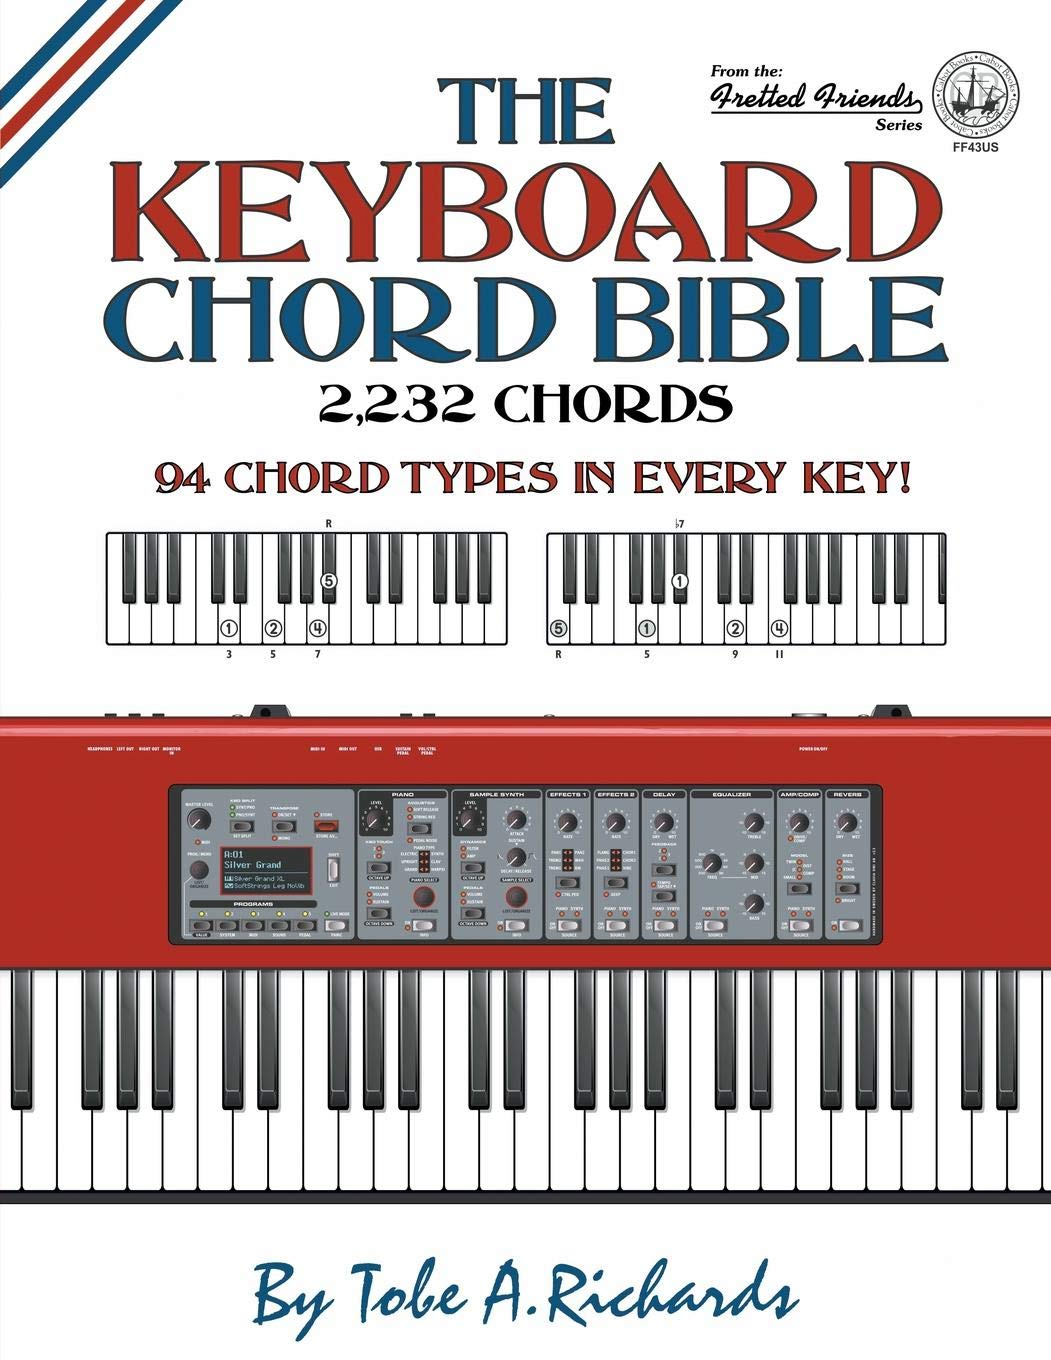 The Keyboard Chord Bible 2 232 Chords Fretted Friends Tobe A